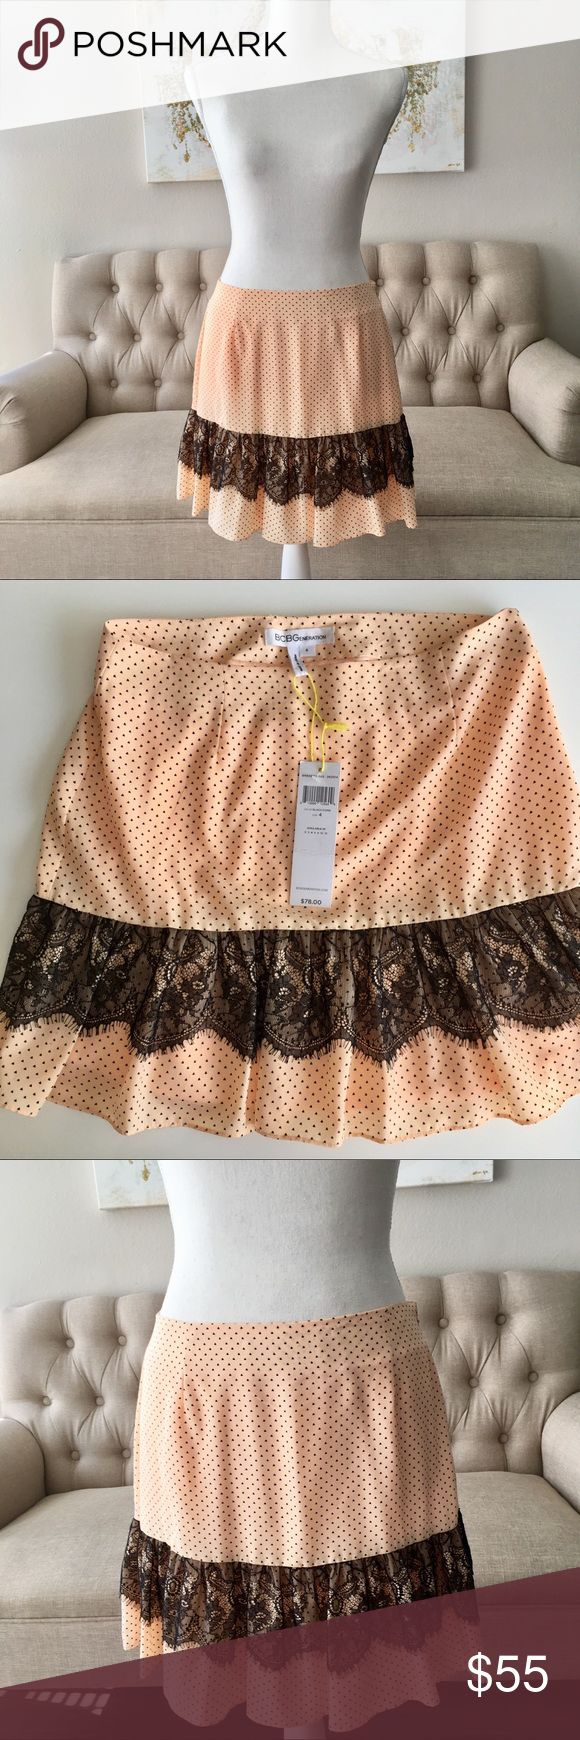 BNWT BCBGENERATION Soft Peach Skirt w/ Black Lace Brand new with tags BCBG Generation peach skirt with little black triangle pattern, and black lace trim. Very cute and boudoir chic. Very soft and delicate skirt with side zipper. Size 4. Original price $78. BCBGeneration Skirts